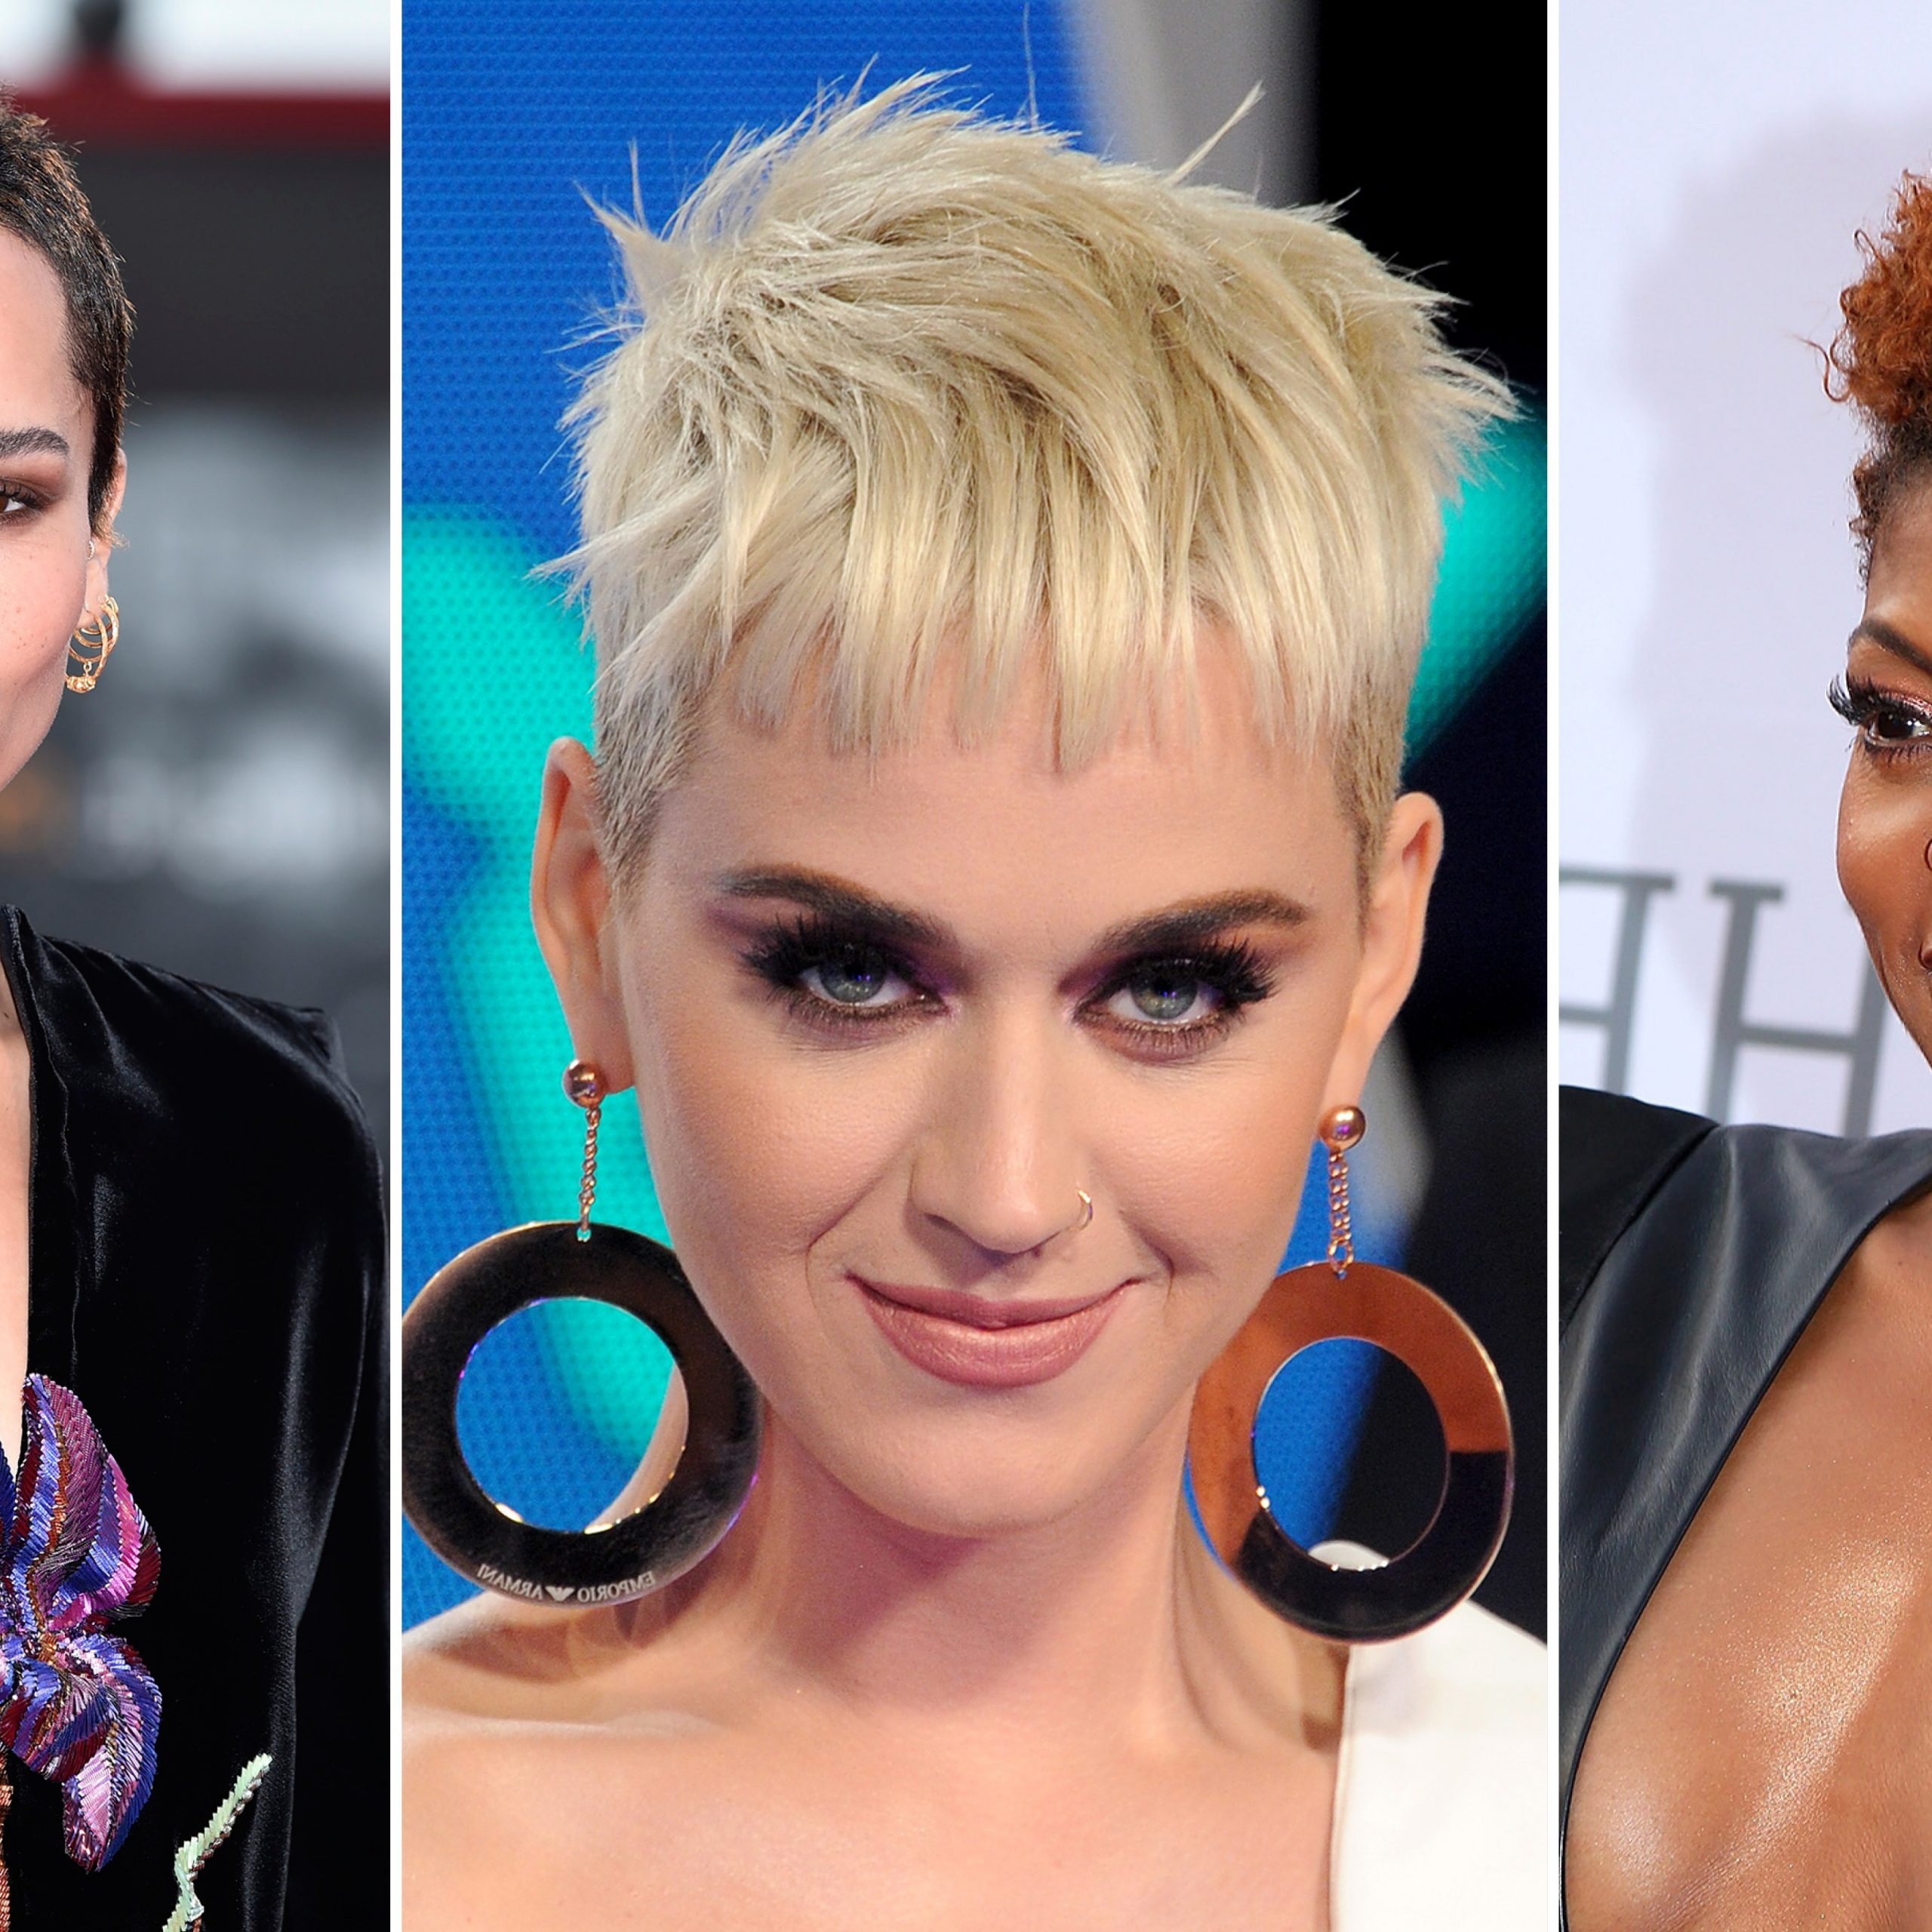 19 Best Pixie Cuts Of 2019 – Celebrity Pixie Hairstyle Ideas With Neat Pixie Haircuts For Gamine Girls (View 1 of 20)